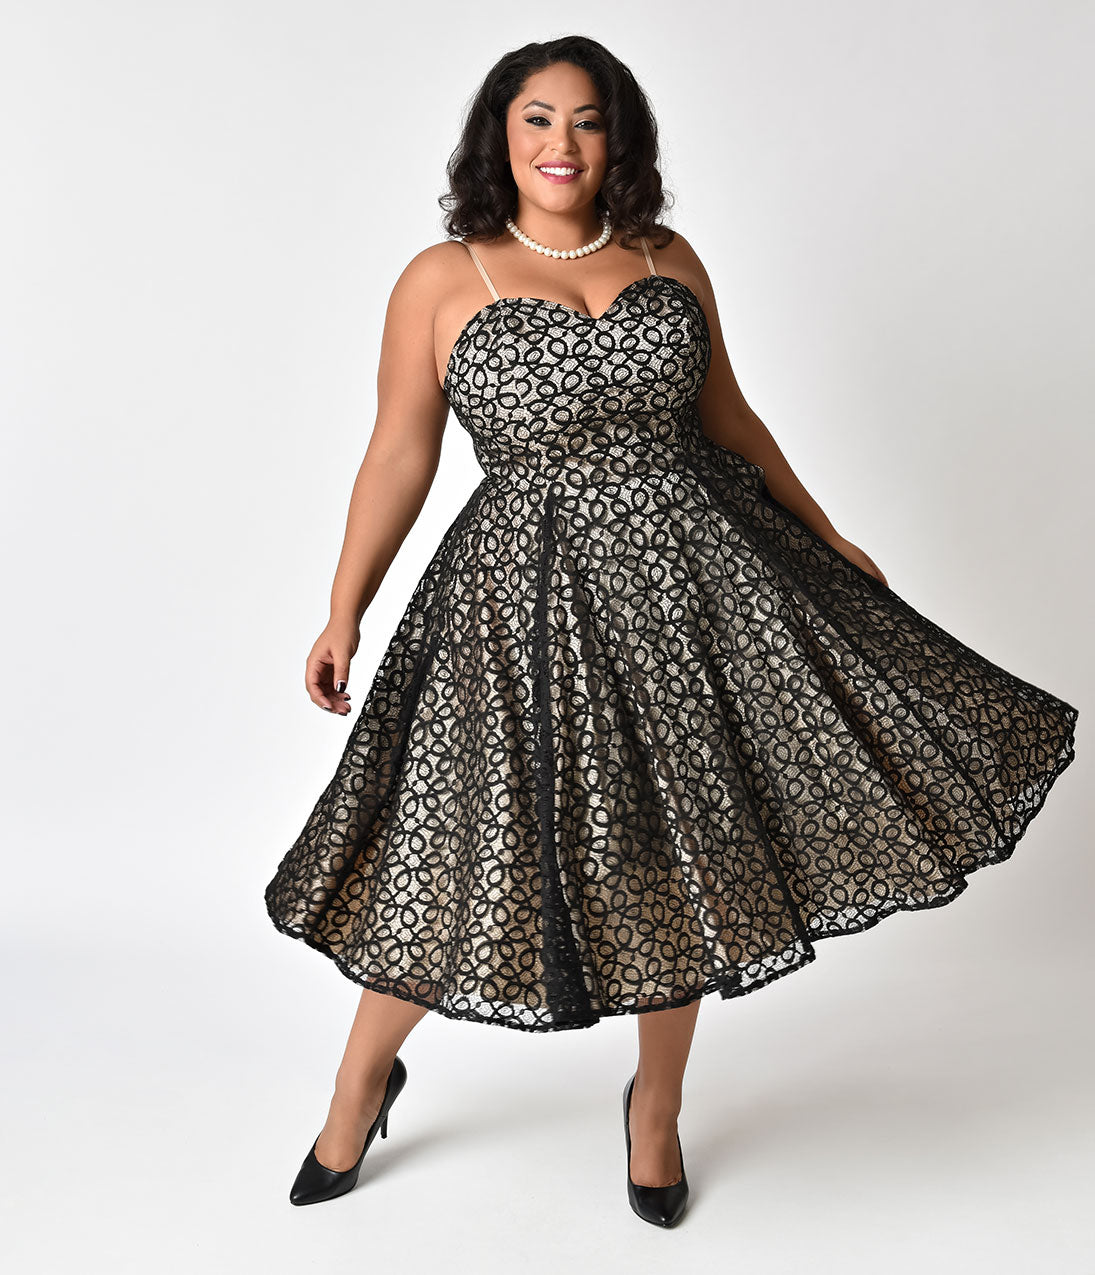 1950s plus size dresses clothing plus size swing dresses 1950s plus size dresses clothing plus size swing dresses unique vintage plus size 1950s ombrellifo Gallery